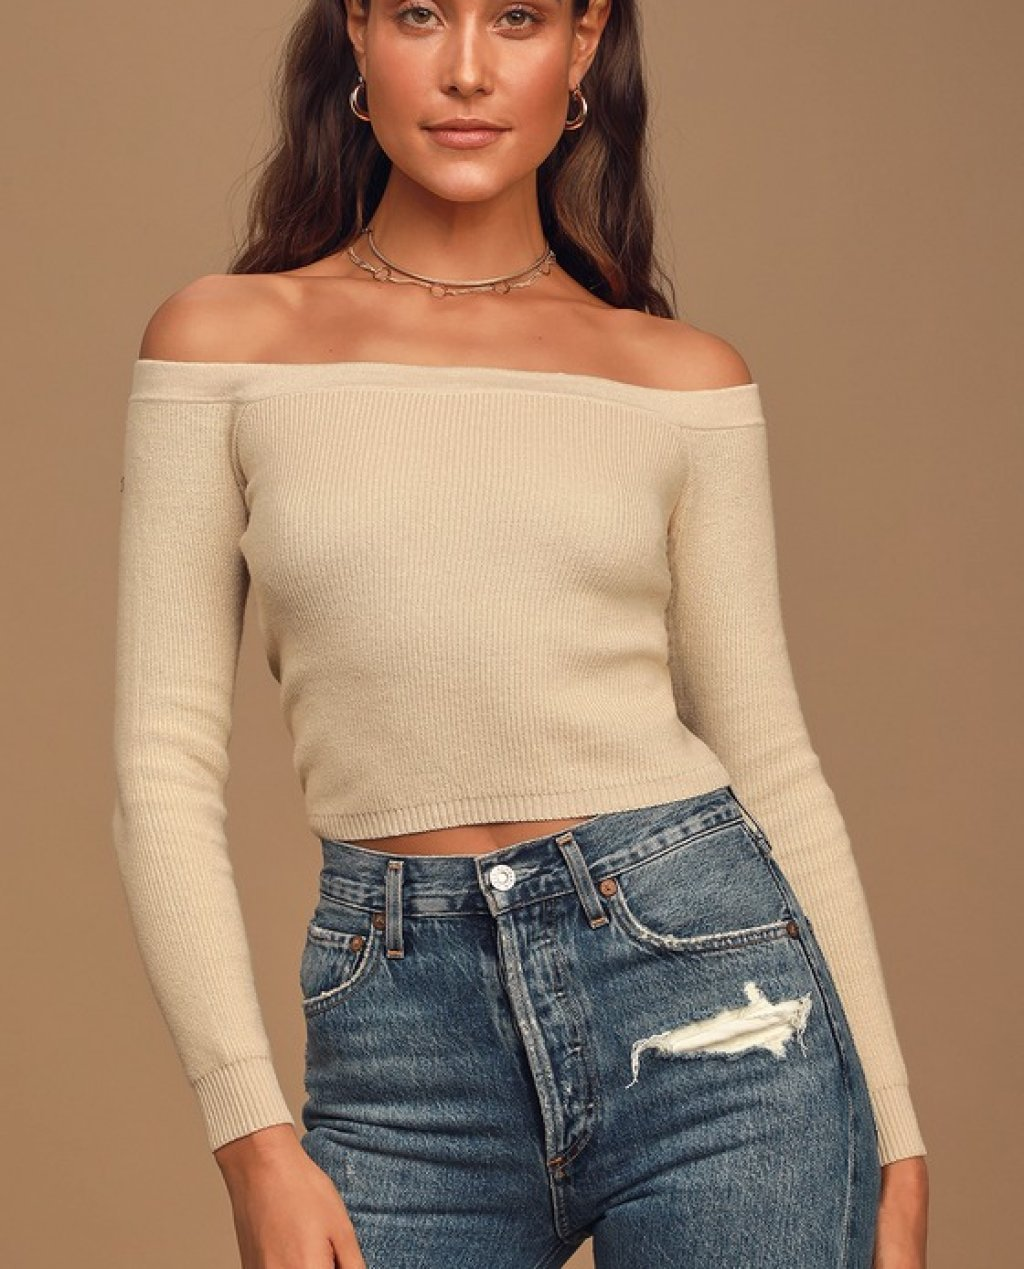 Crop On By Beige Knit Off-the-Shoulder Cropped Sweater Top